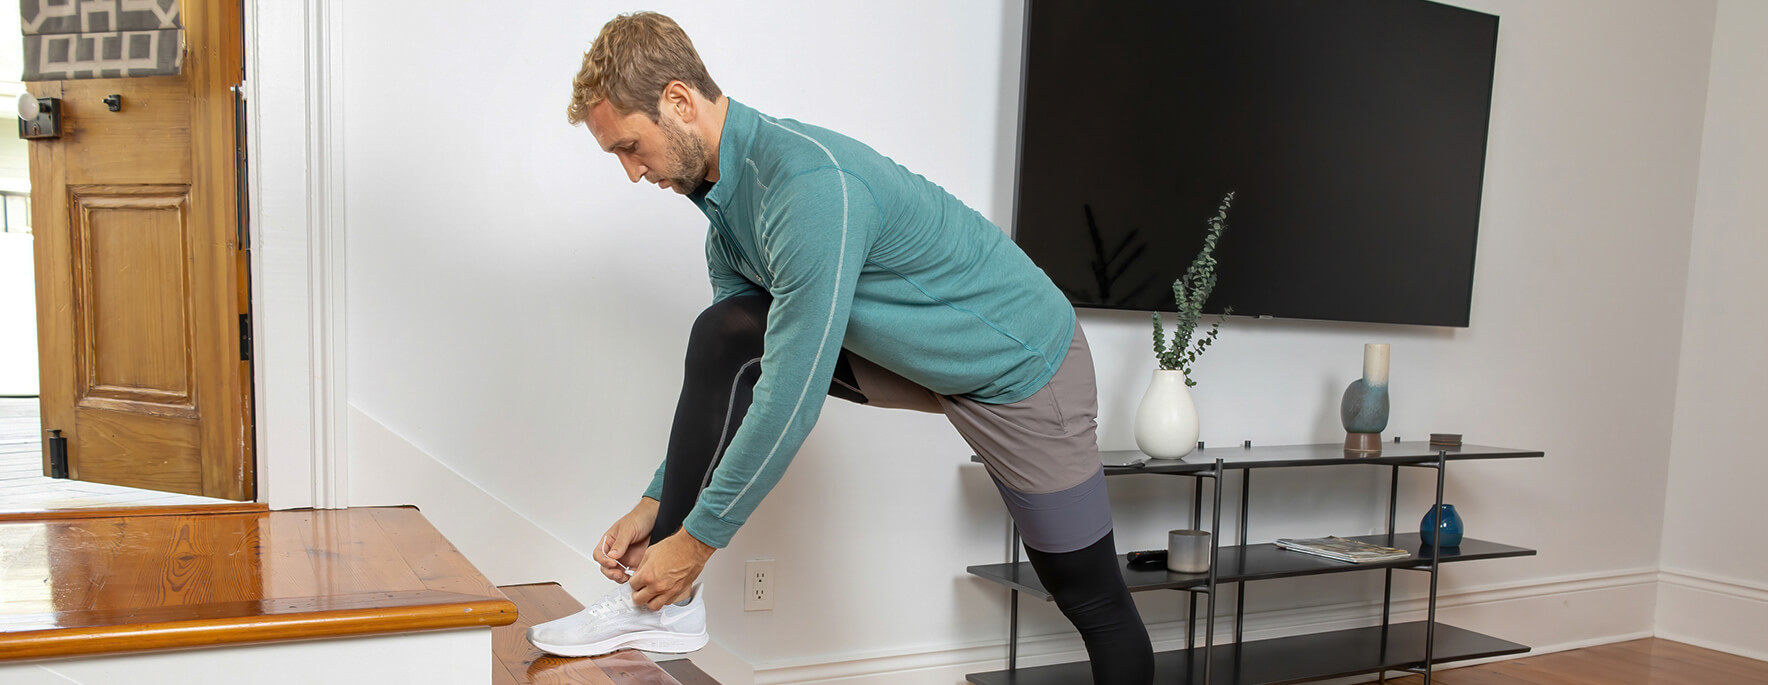 Men's activewear clothing 2020 resolutions